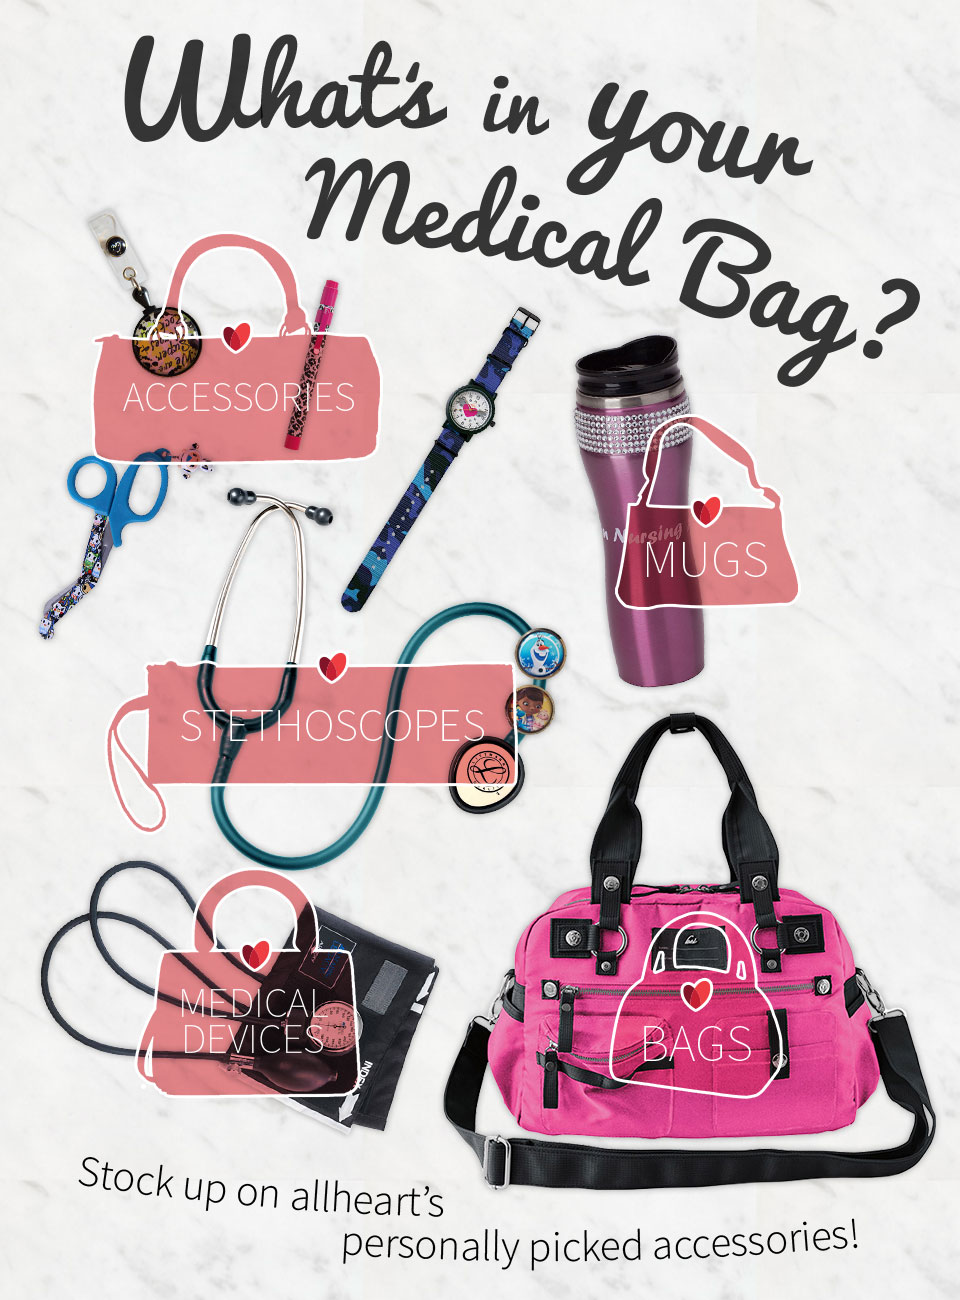 Medical Bag Shop